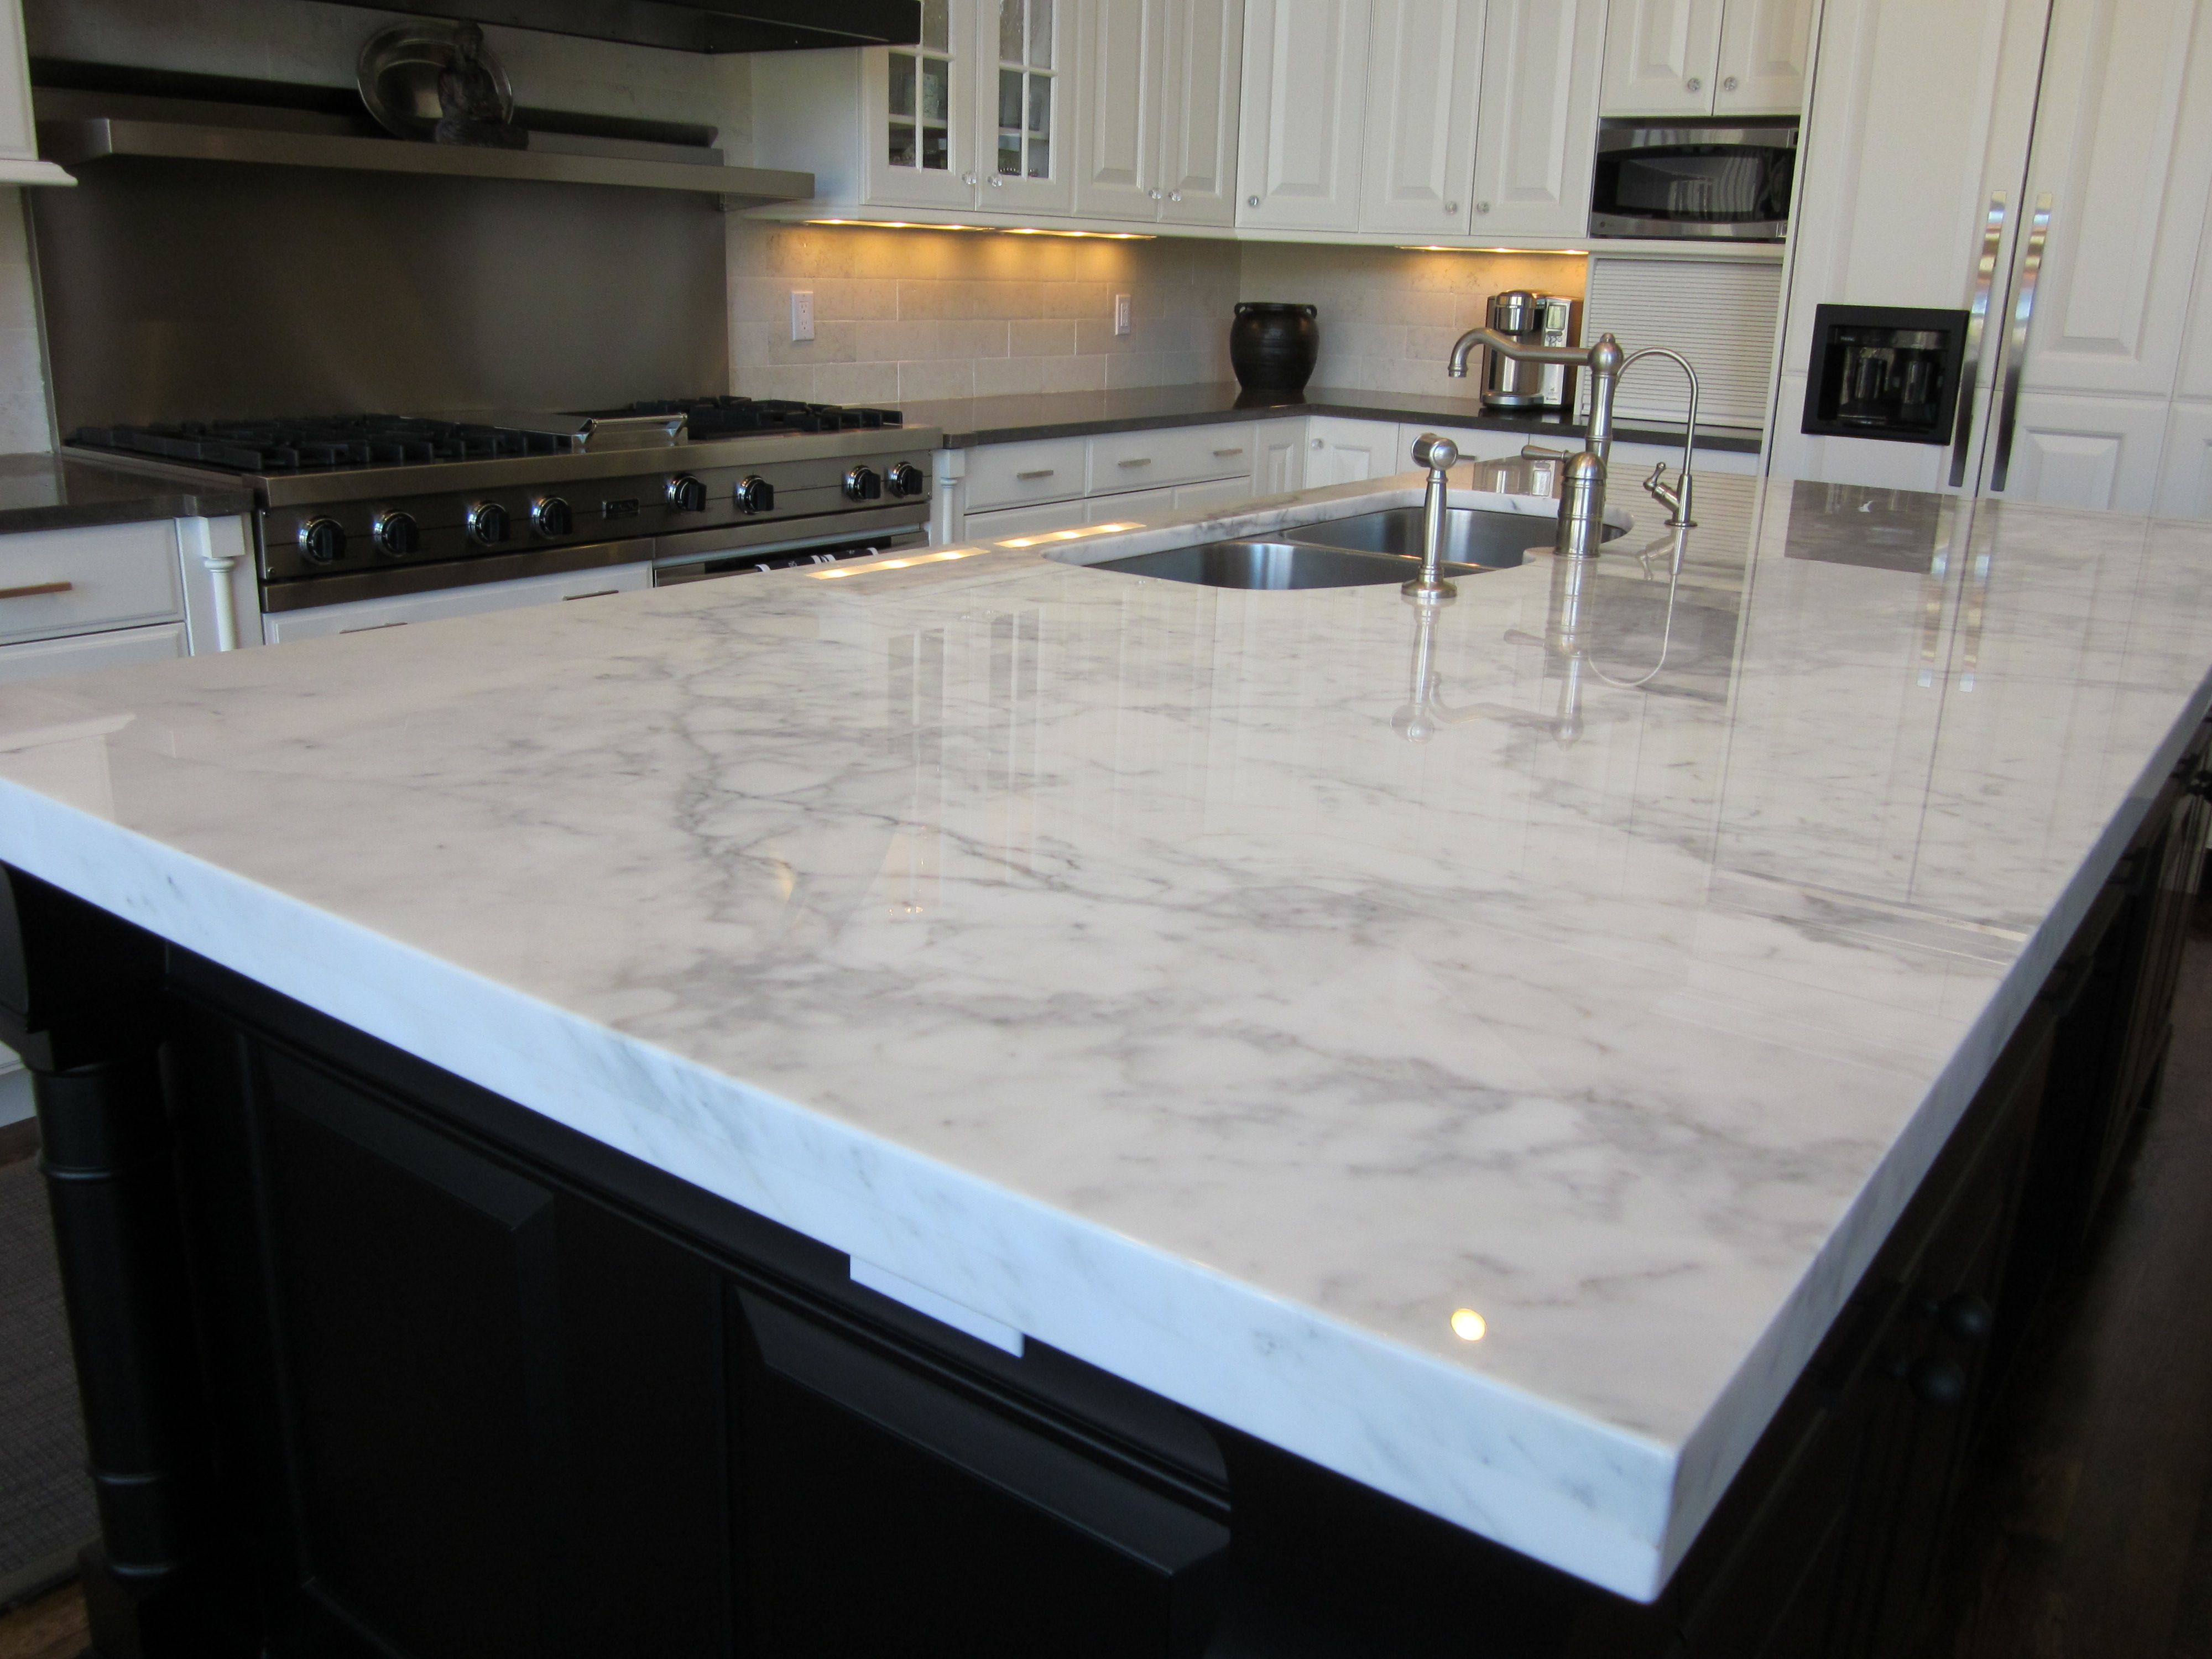 Stone Countertops Near Me : granite countertops Furniture Images and Picture ofWhite Countertop ...